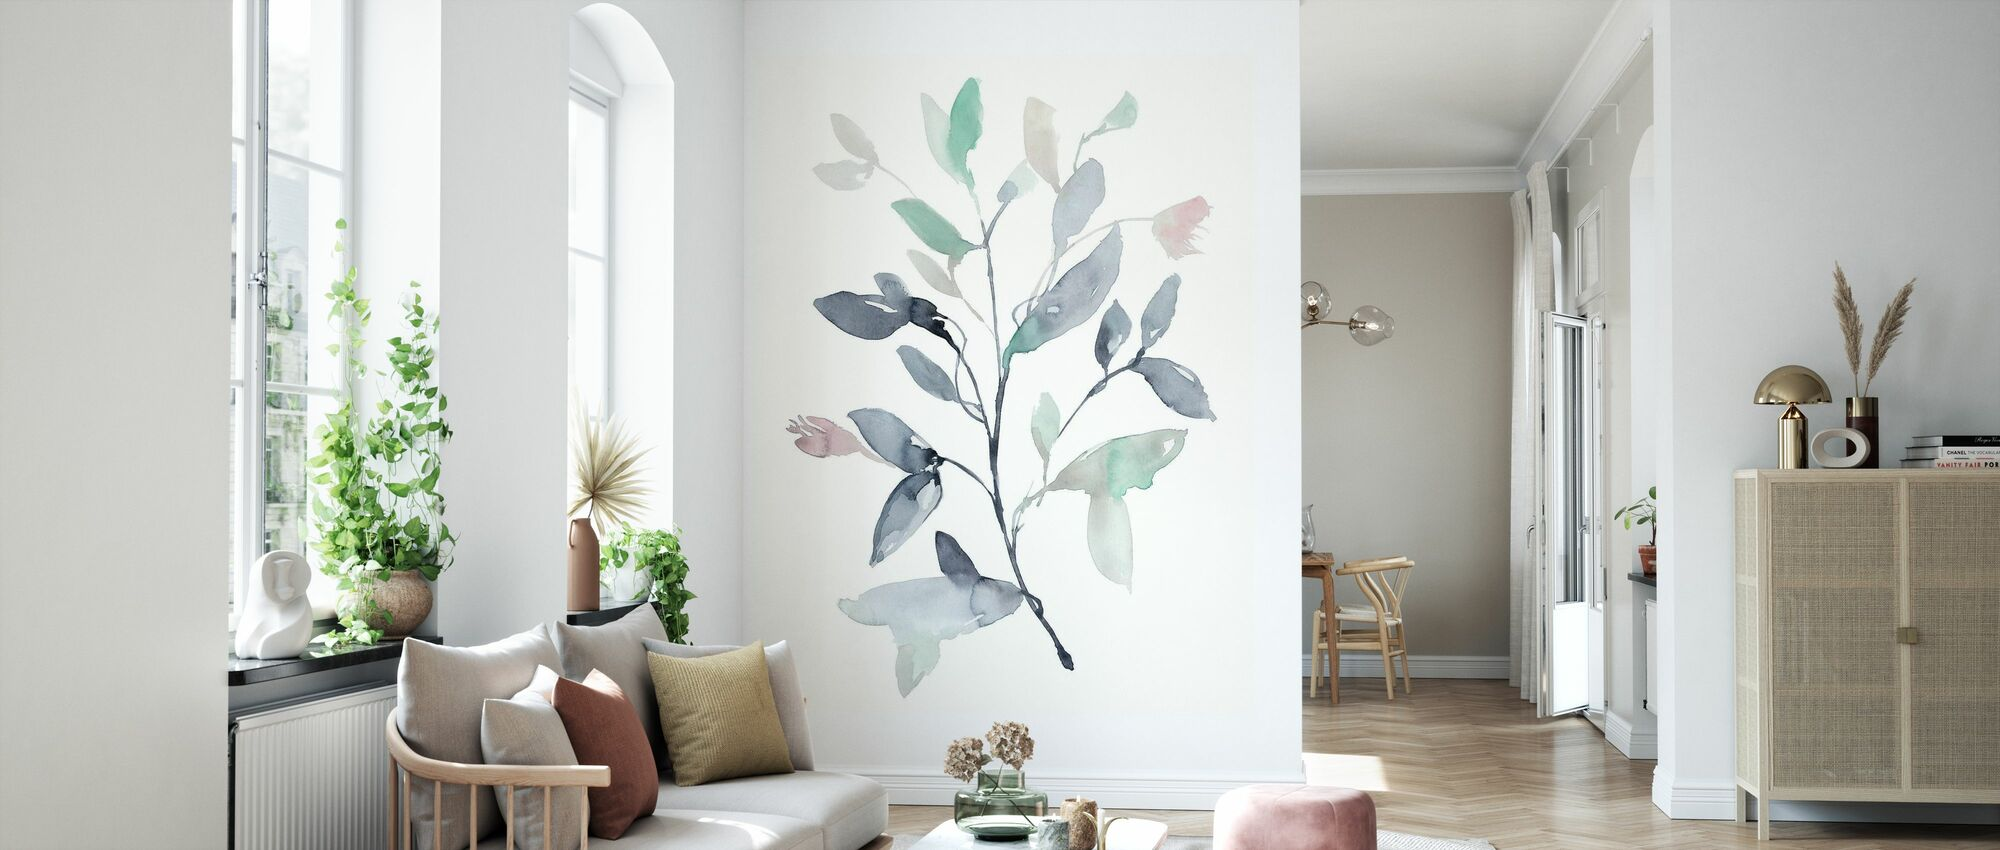 Water Branches - Wallpaper - Living Room